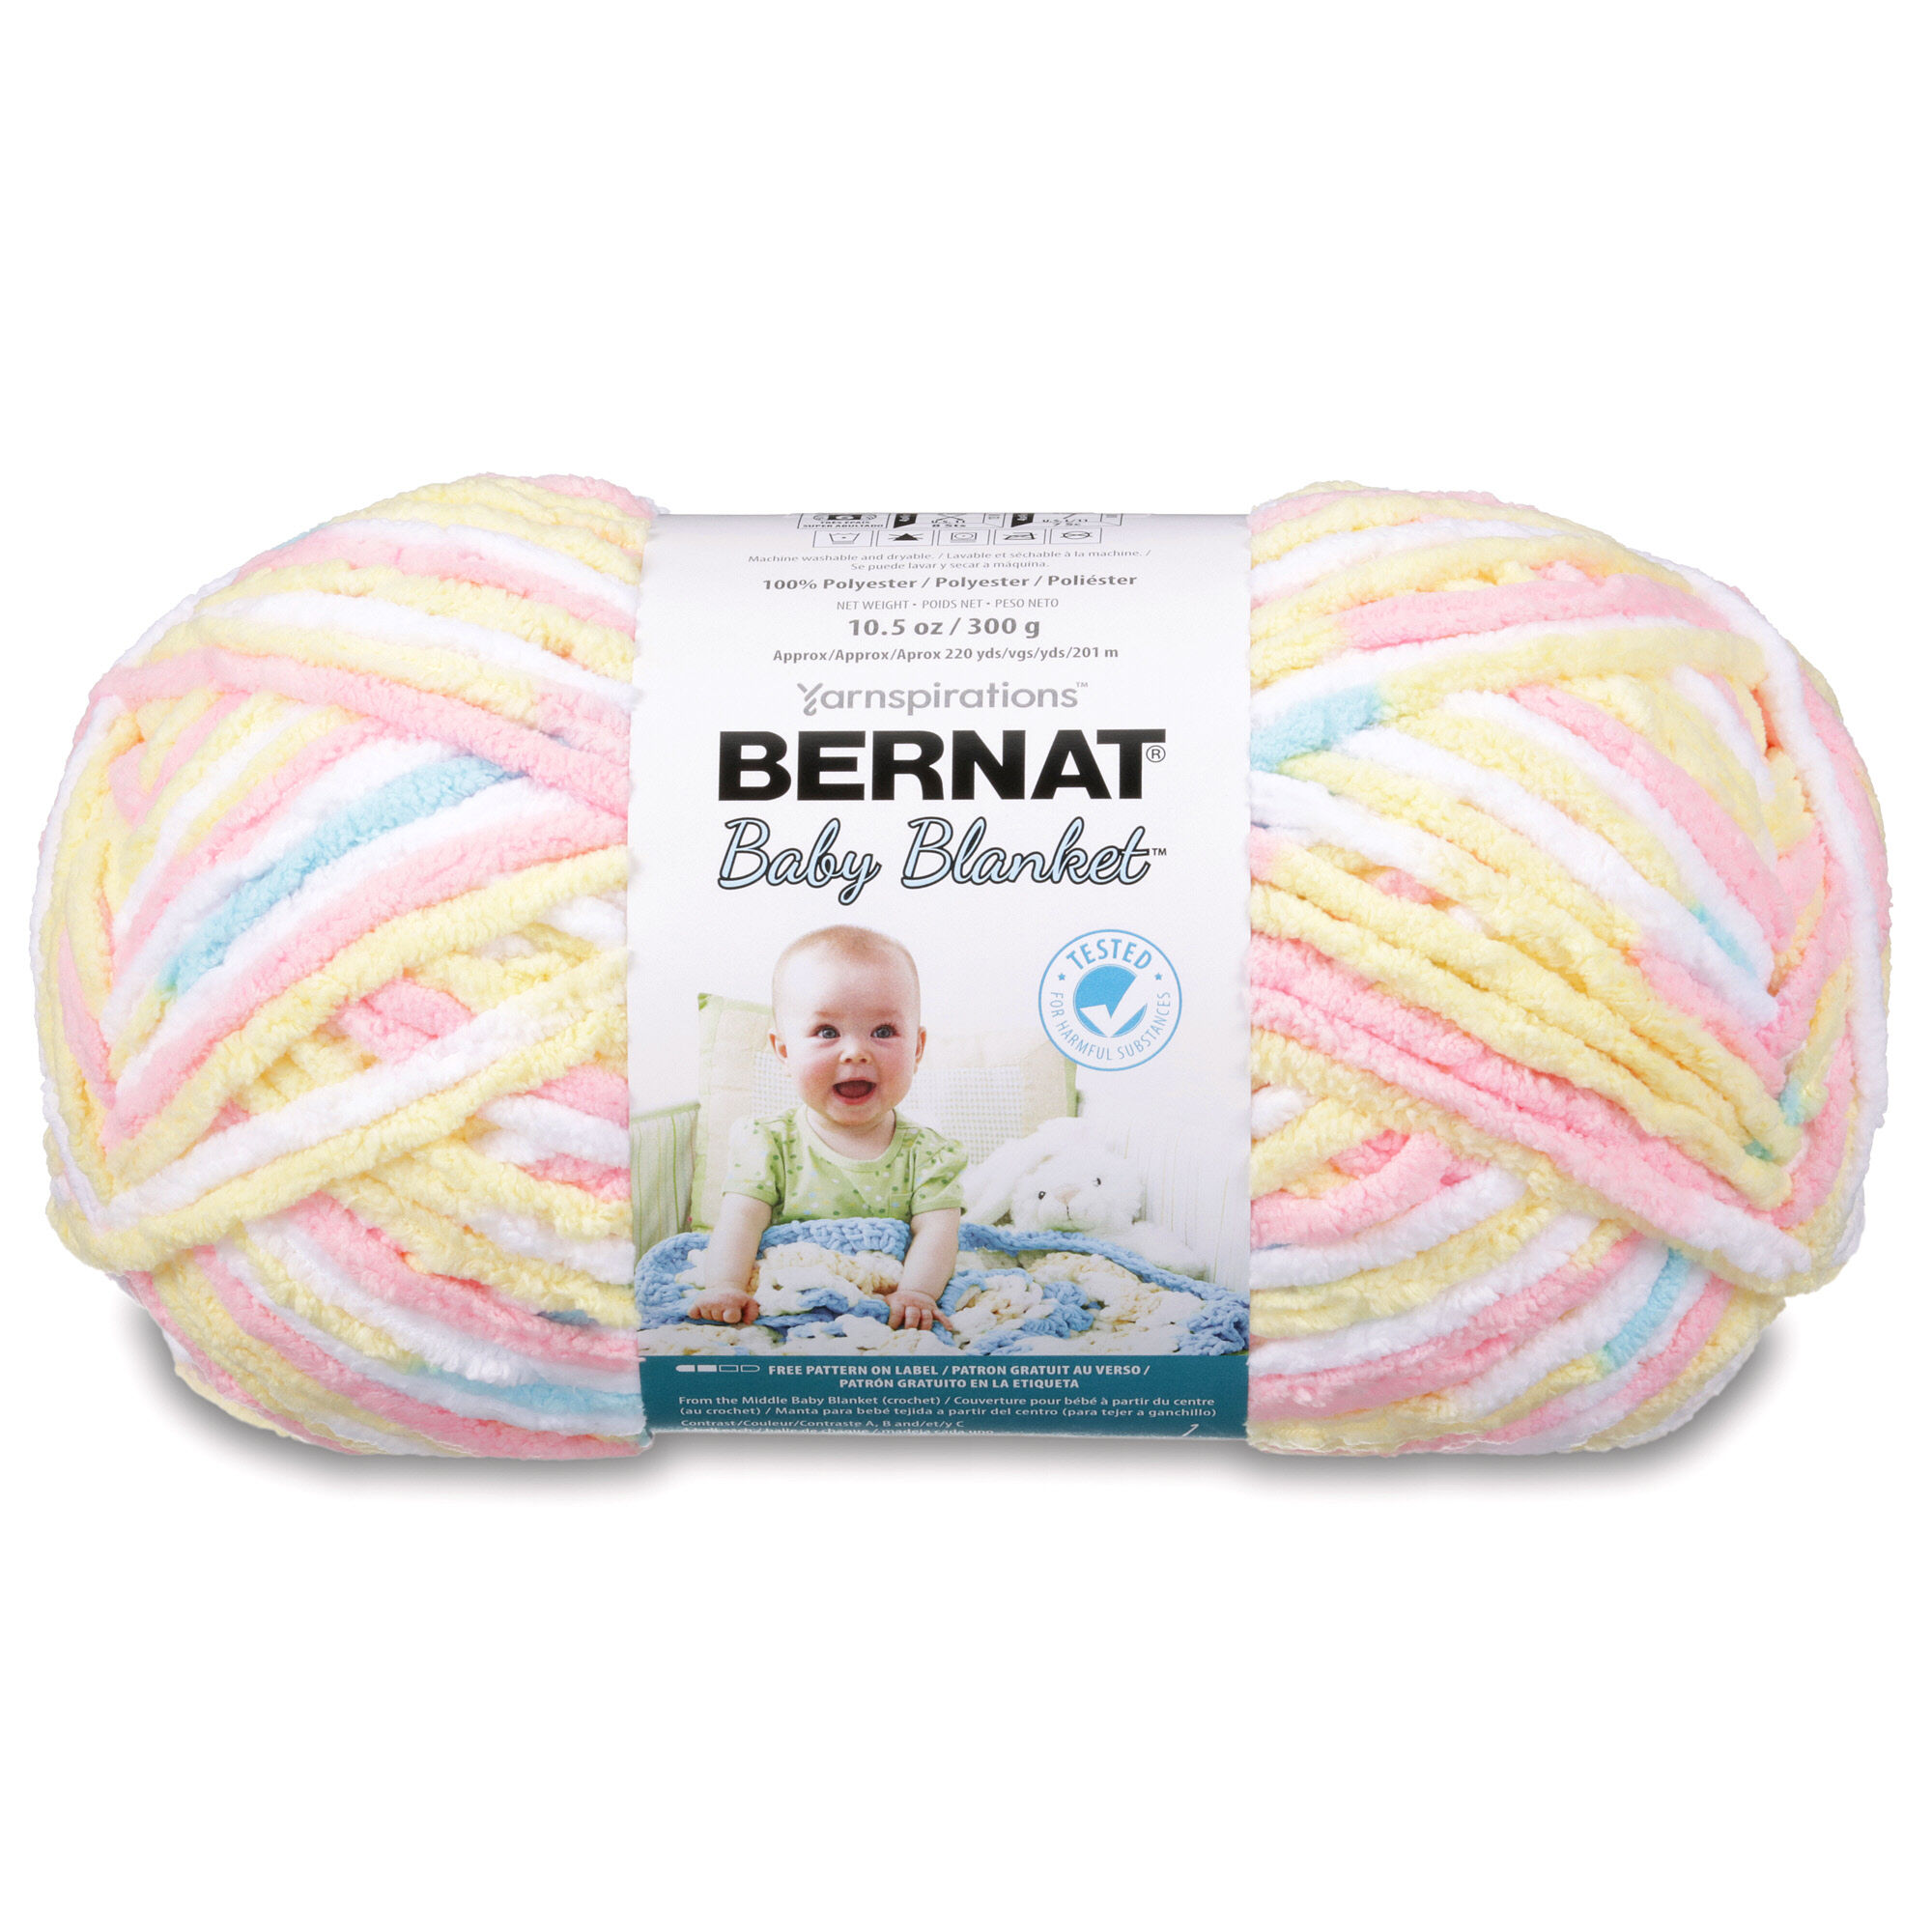 Bernat Baby Blanket Yarn 300g Shawsdirect